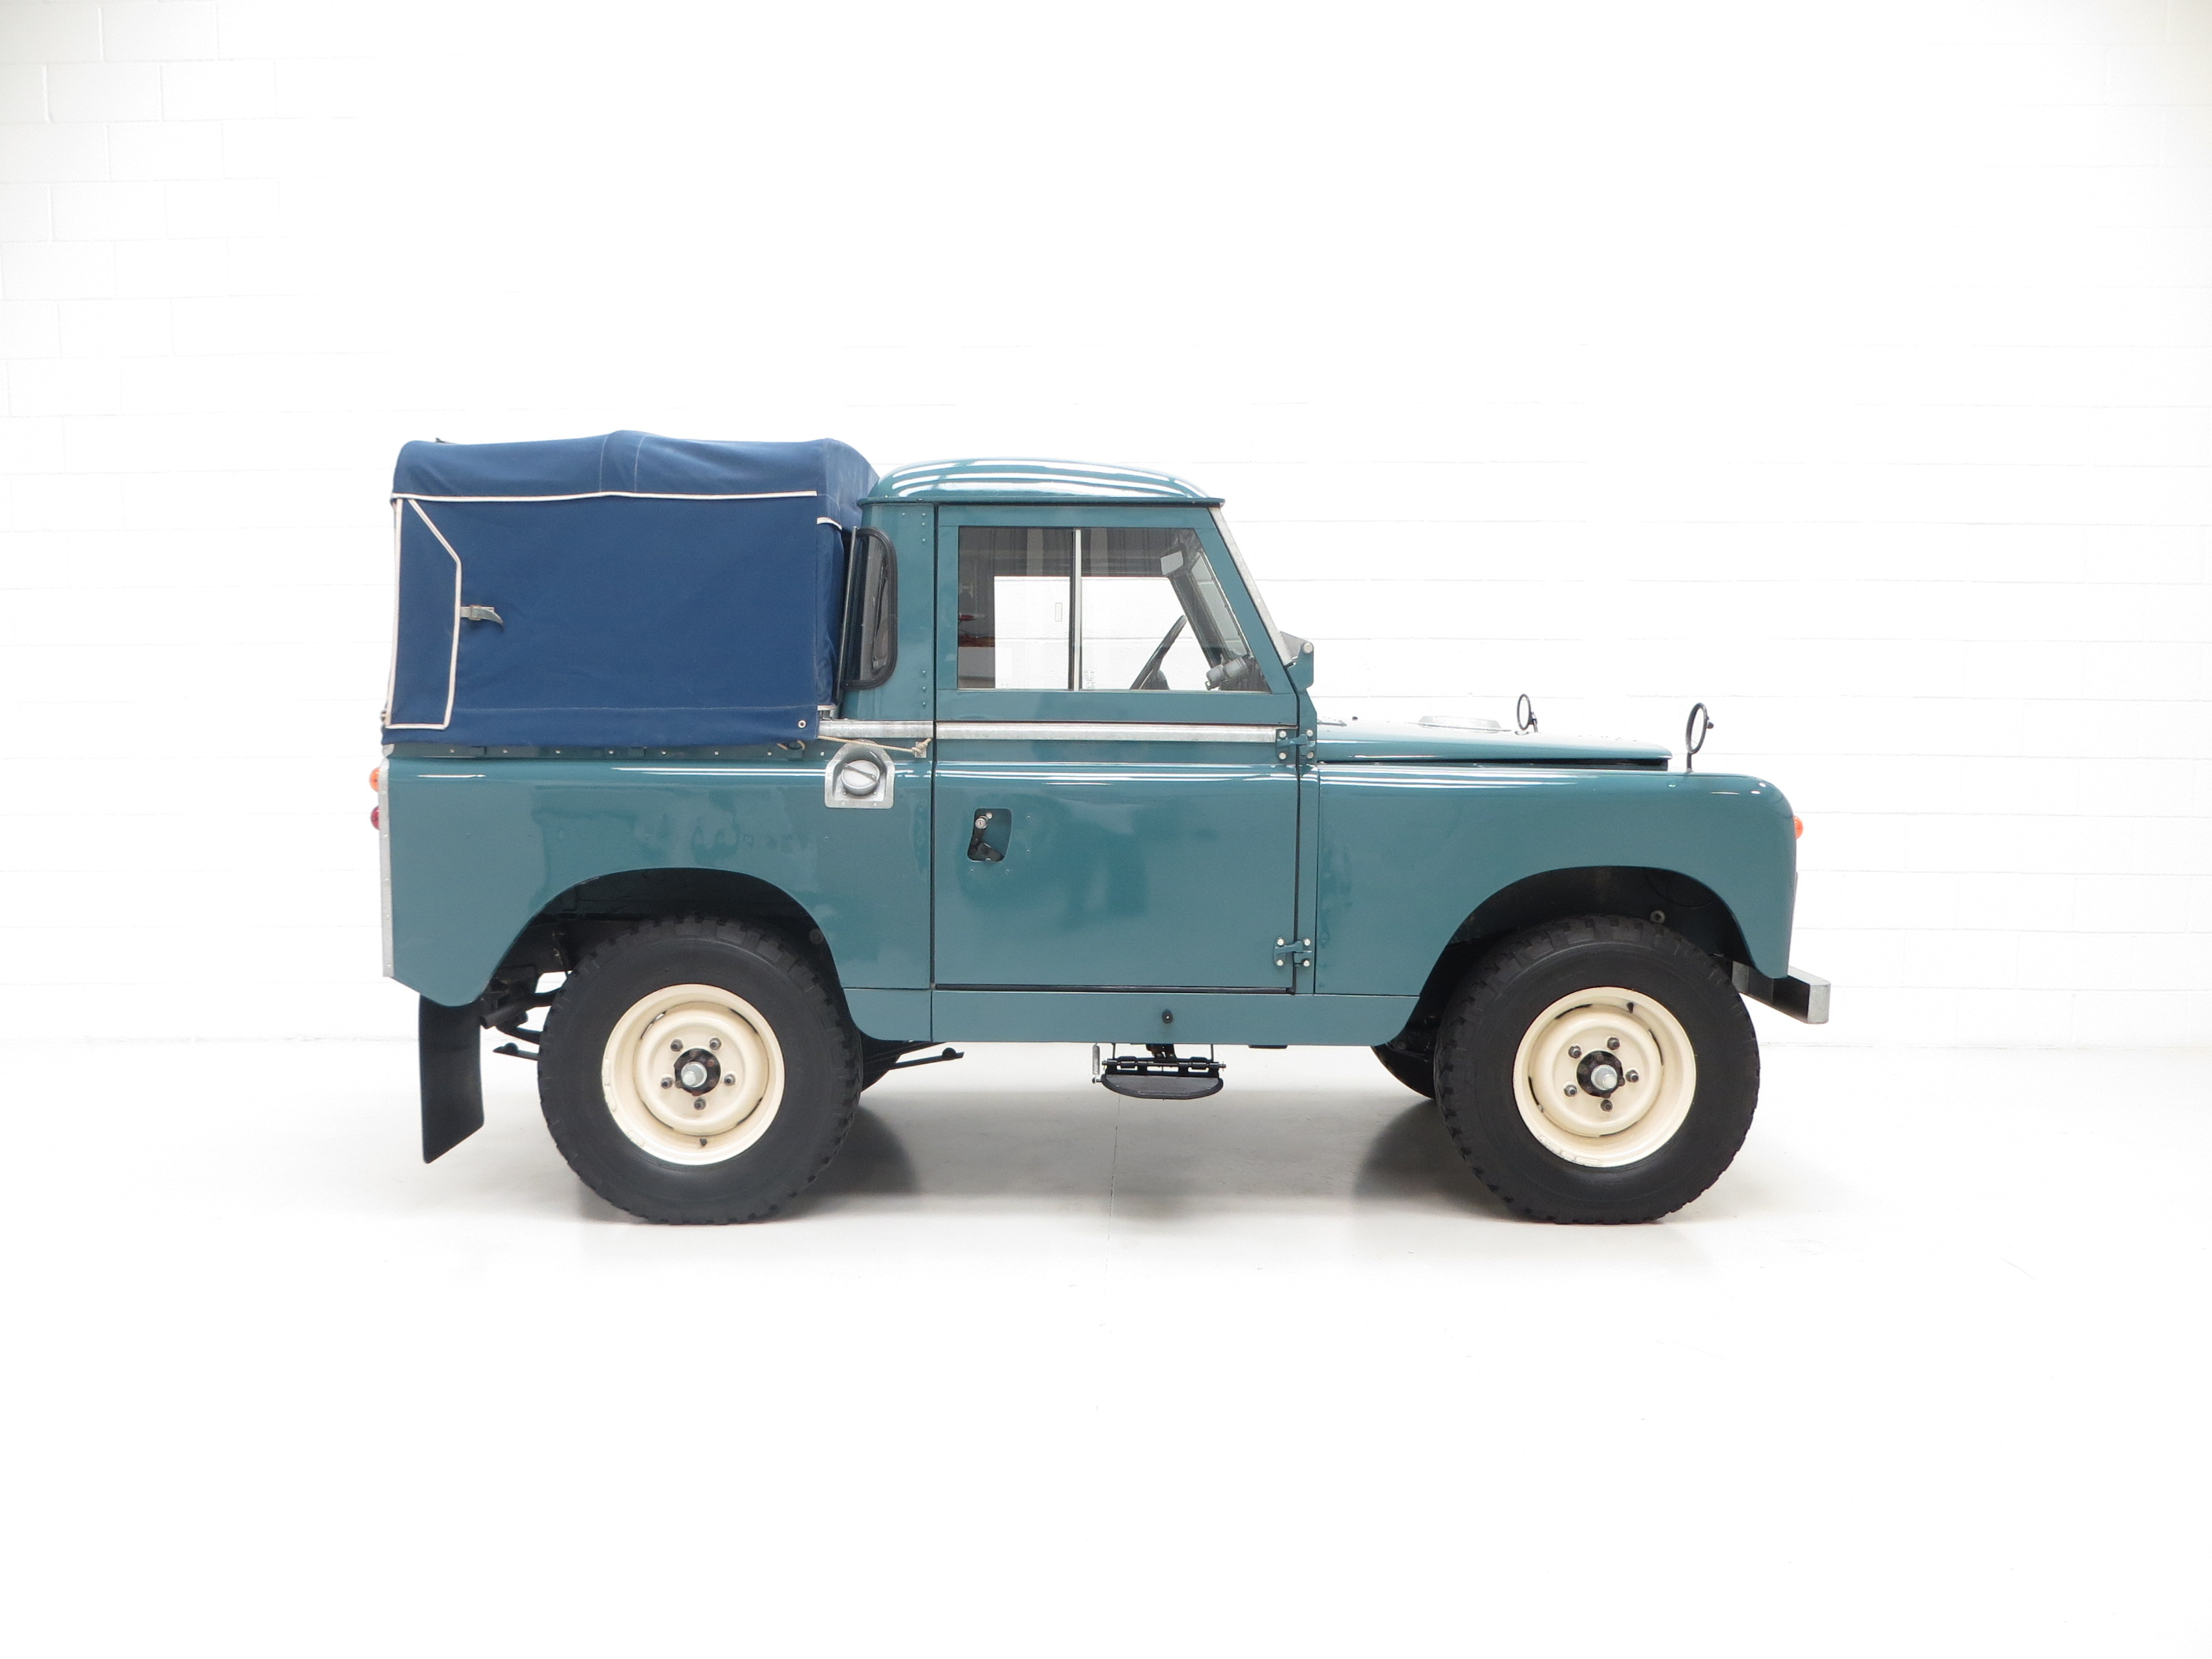 A Versatile Land Rover Series 2 SWB 88 inch SOLD PE1